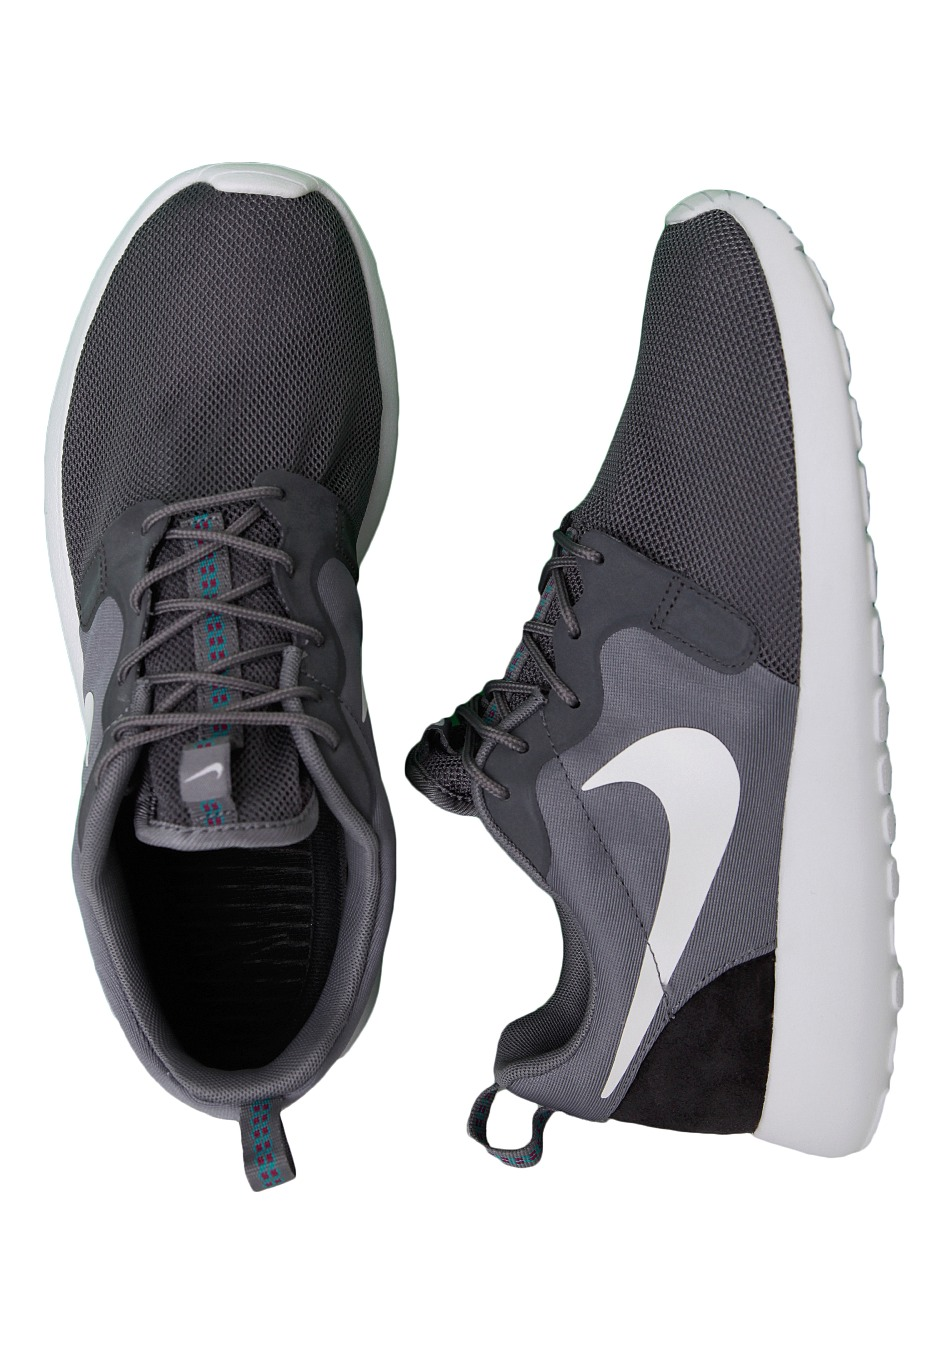 new product 71d2c 5c356 Nike - Roshe Run Hyperfuse Clear Grey White Anthracite Turbo Green - Shoes  - Impericon.com Worldwide